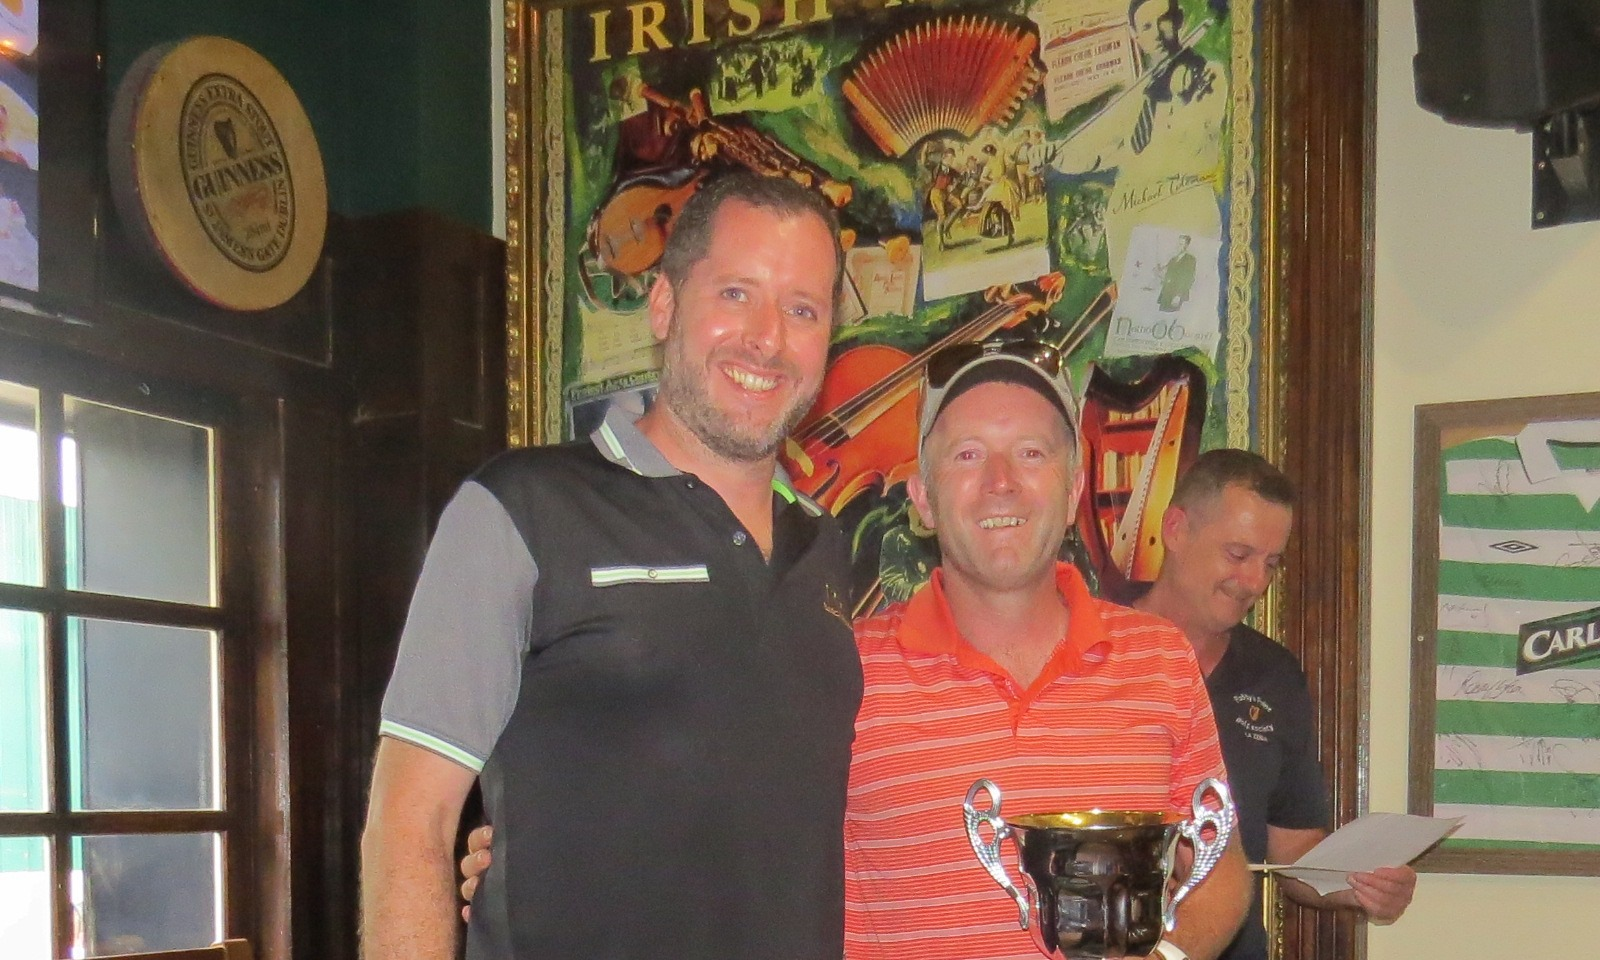 Paddy S Point Golf Society The Leader Newspaper # Muebles Leaders Tarragona